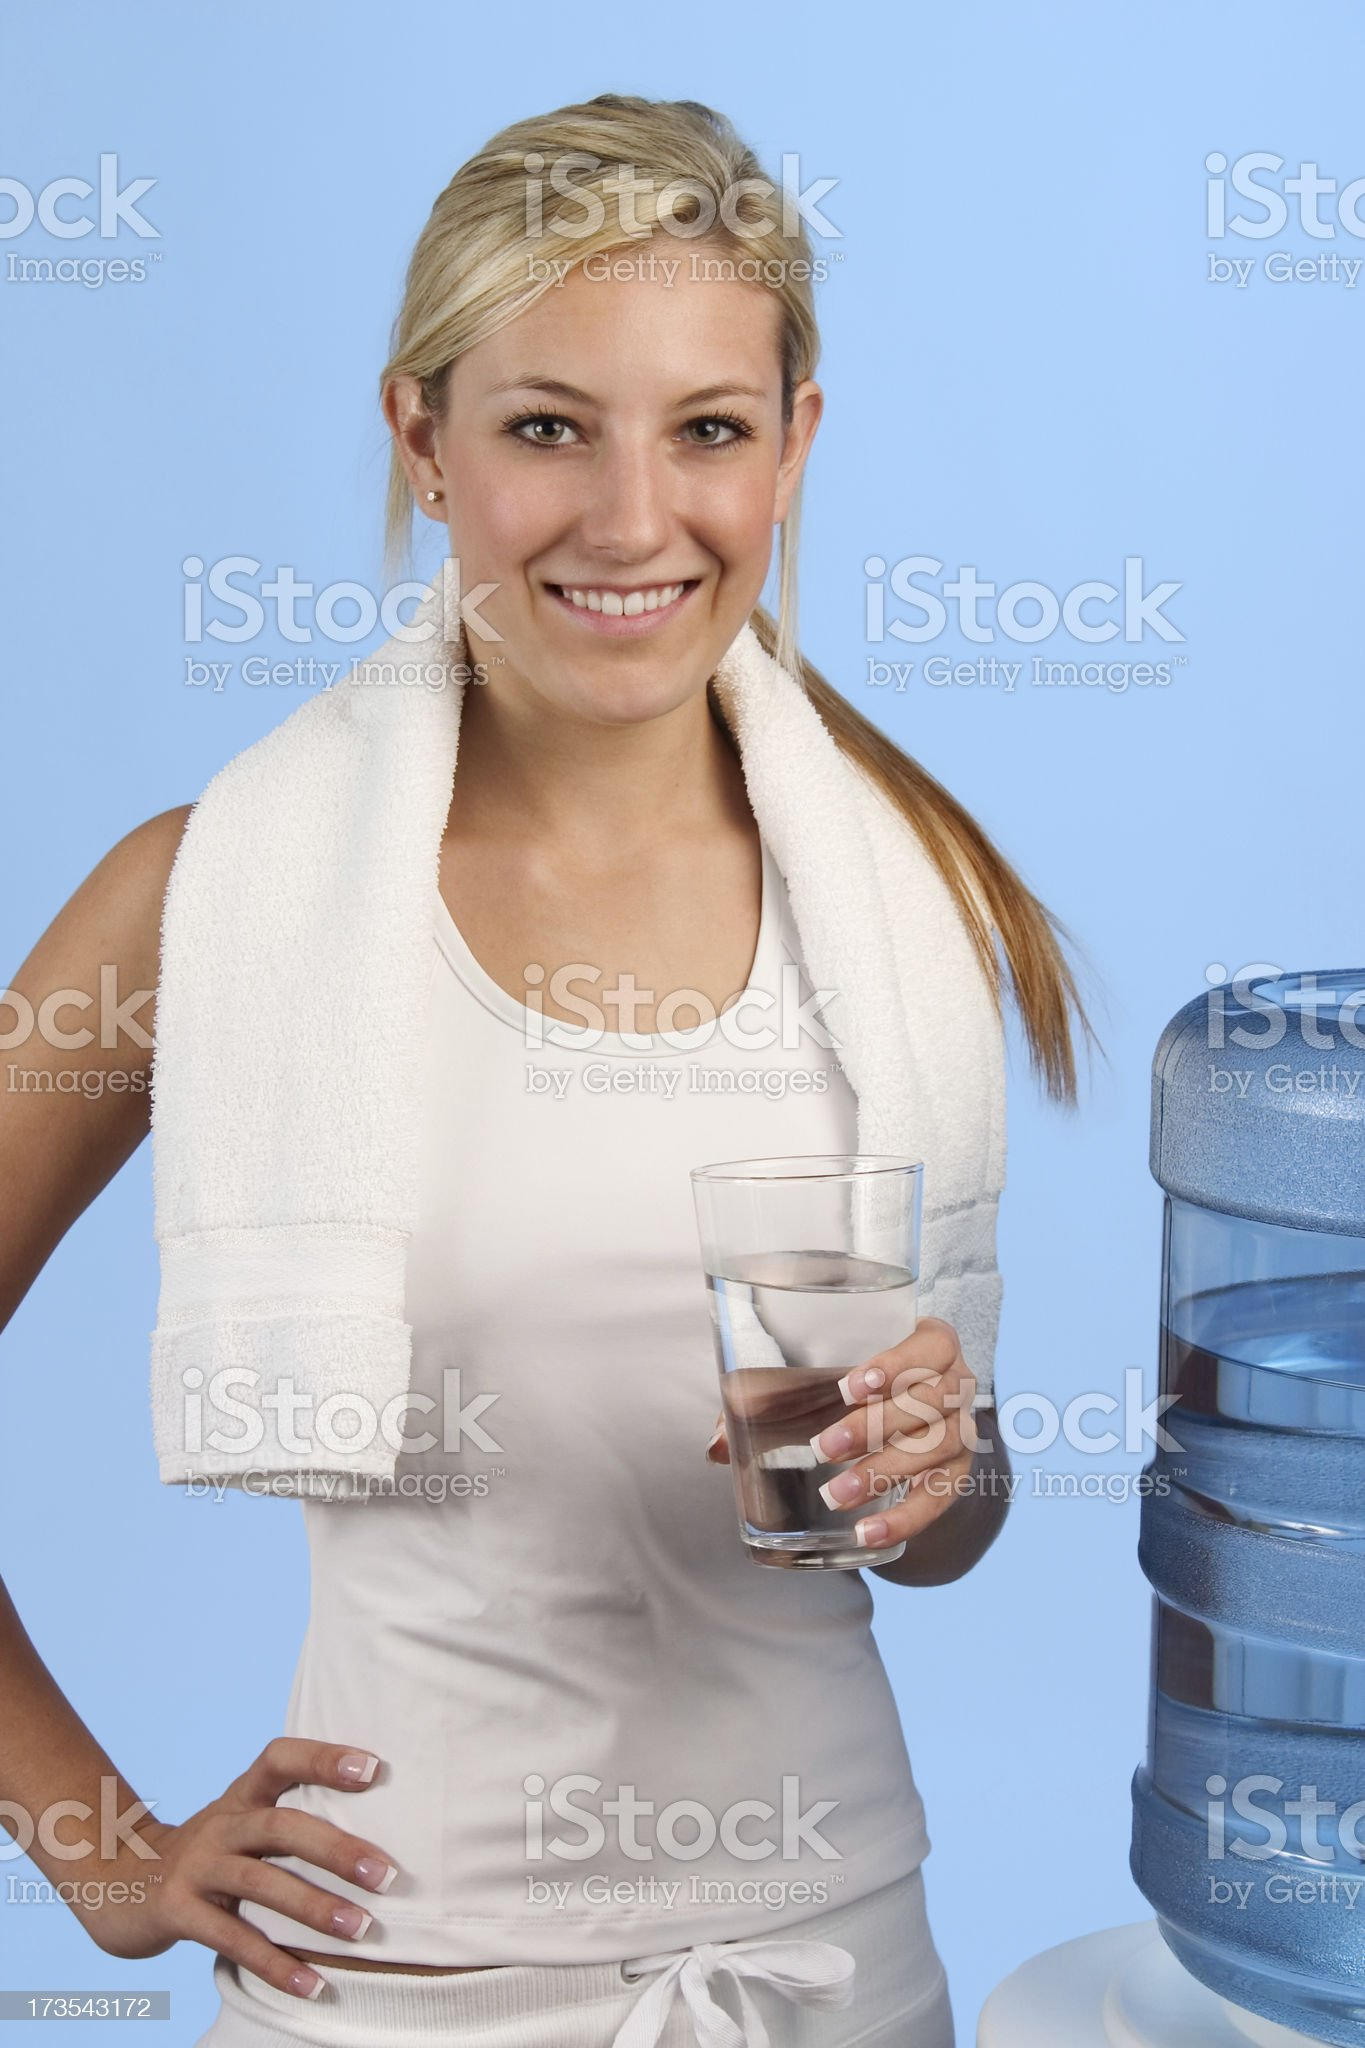 Woman Holding Water Glass royalty-free stock photo